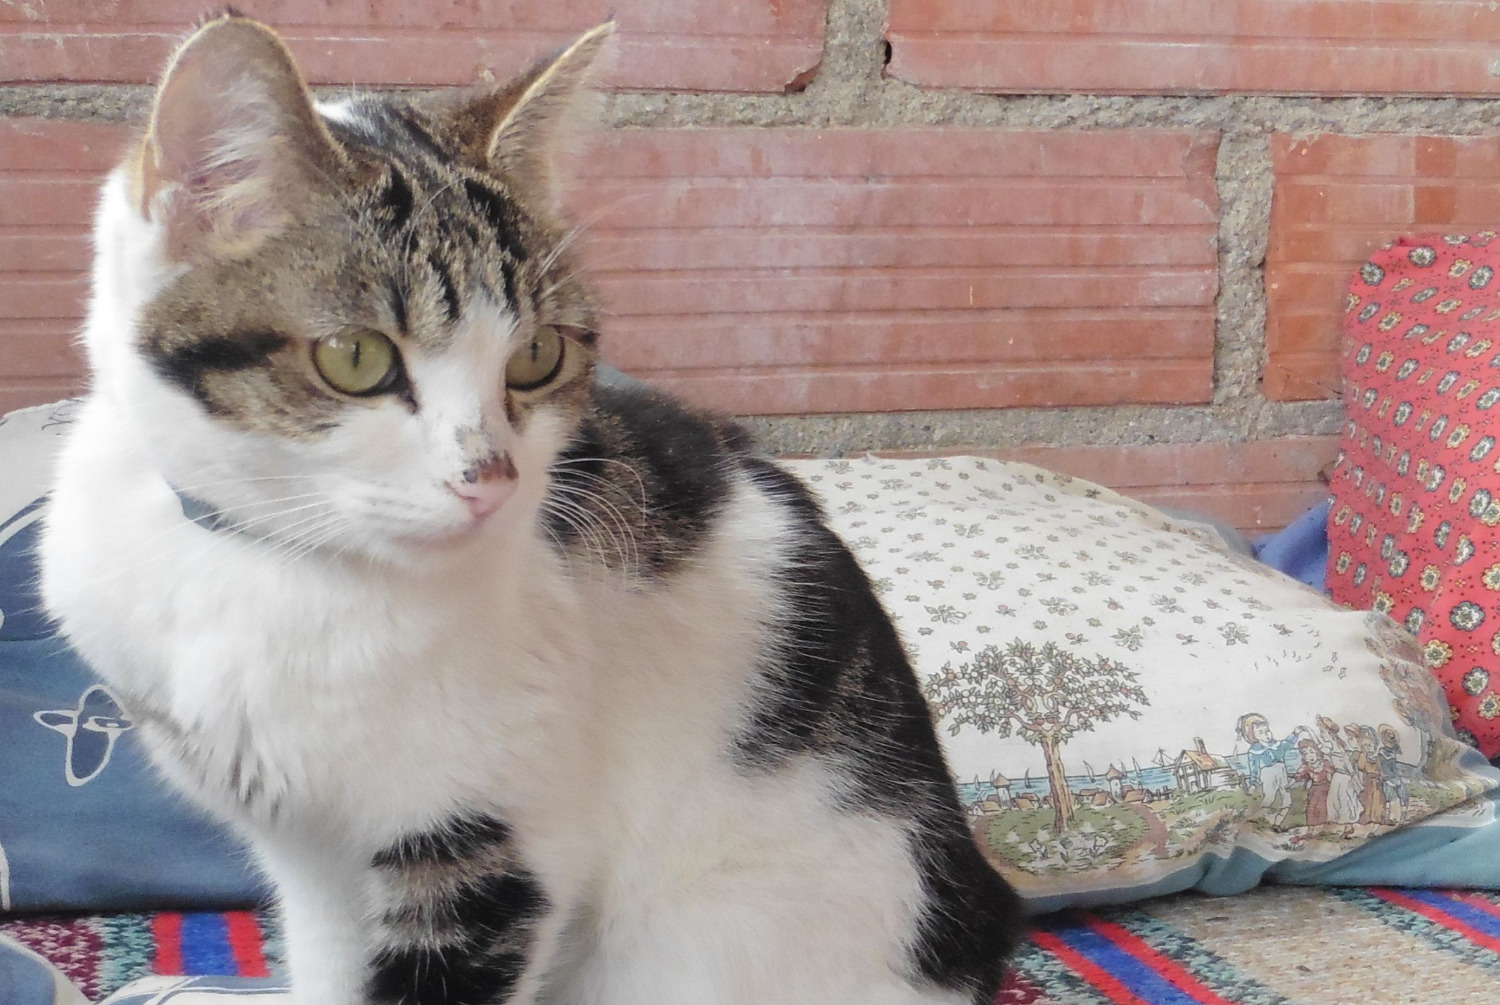 Discovery alert Cat Female , Between 9 and 12 months Damiatte France